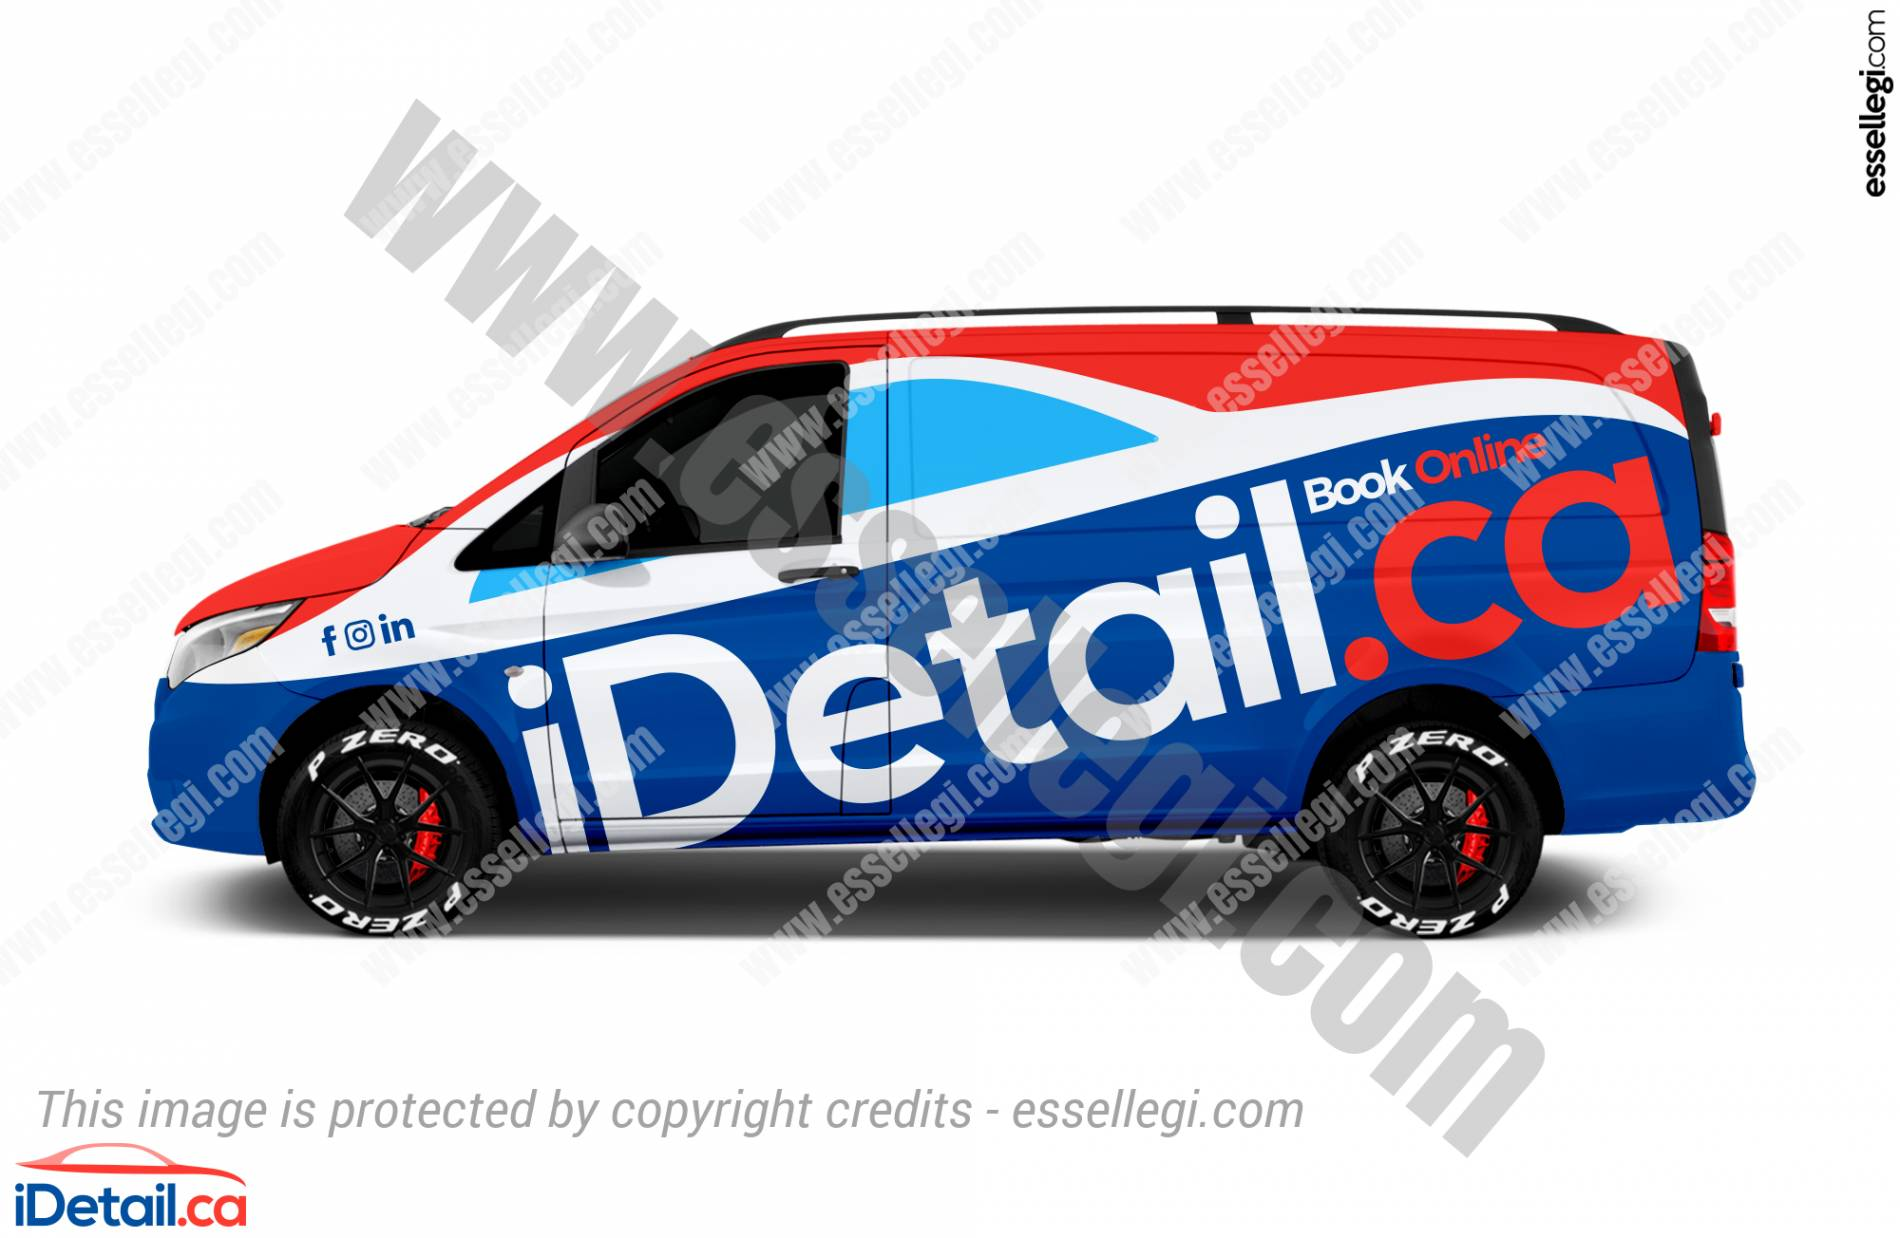 Mercedes Metris Wrap Design. Mercedes Metris | Van Wrap Design by Essellegi. Van Signs, Van Signage, Van Wrapping, Van Signwriting, Van Wrap Designer, Signs for Van, Van Logo, Van Graphic by Essellegi.